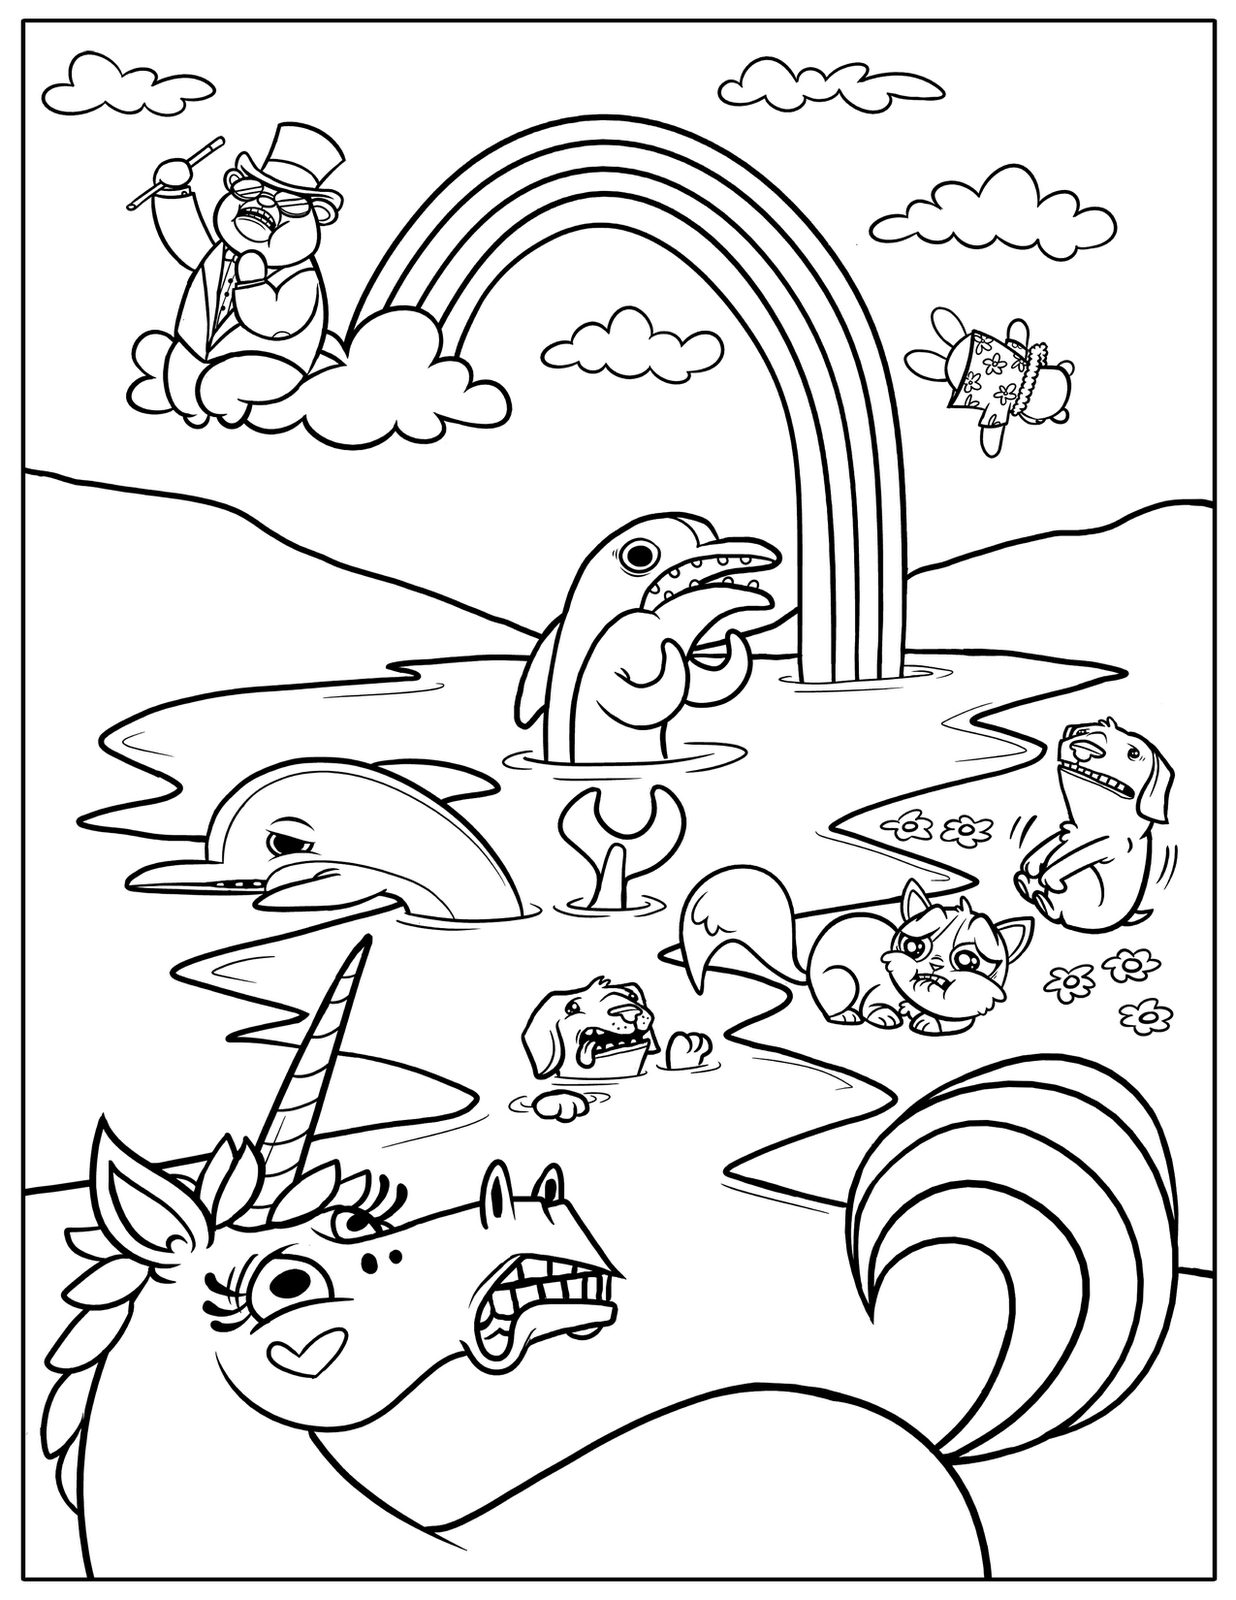 Free Printable Rainbow Coloring Pages For Kids | printable coloring book for kids.